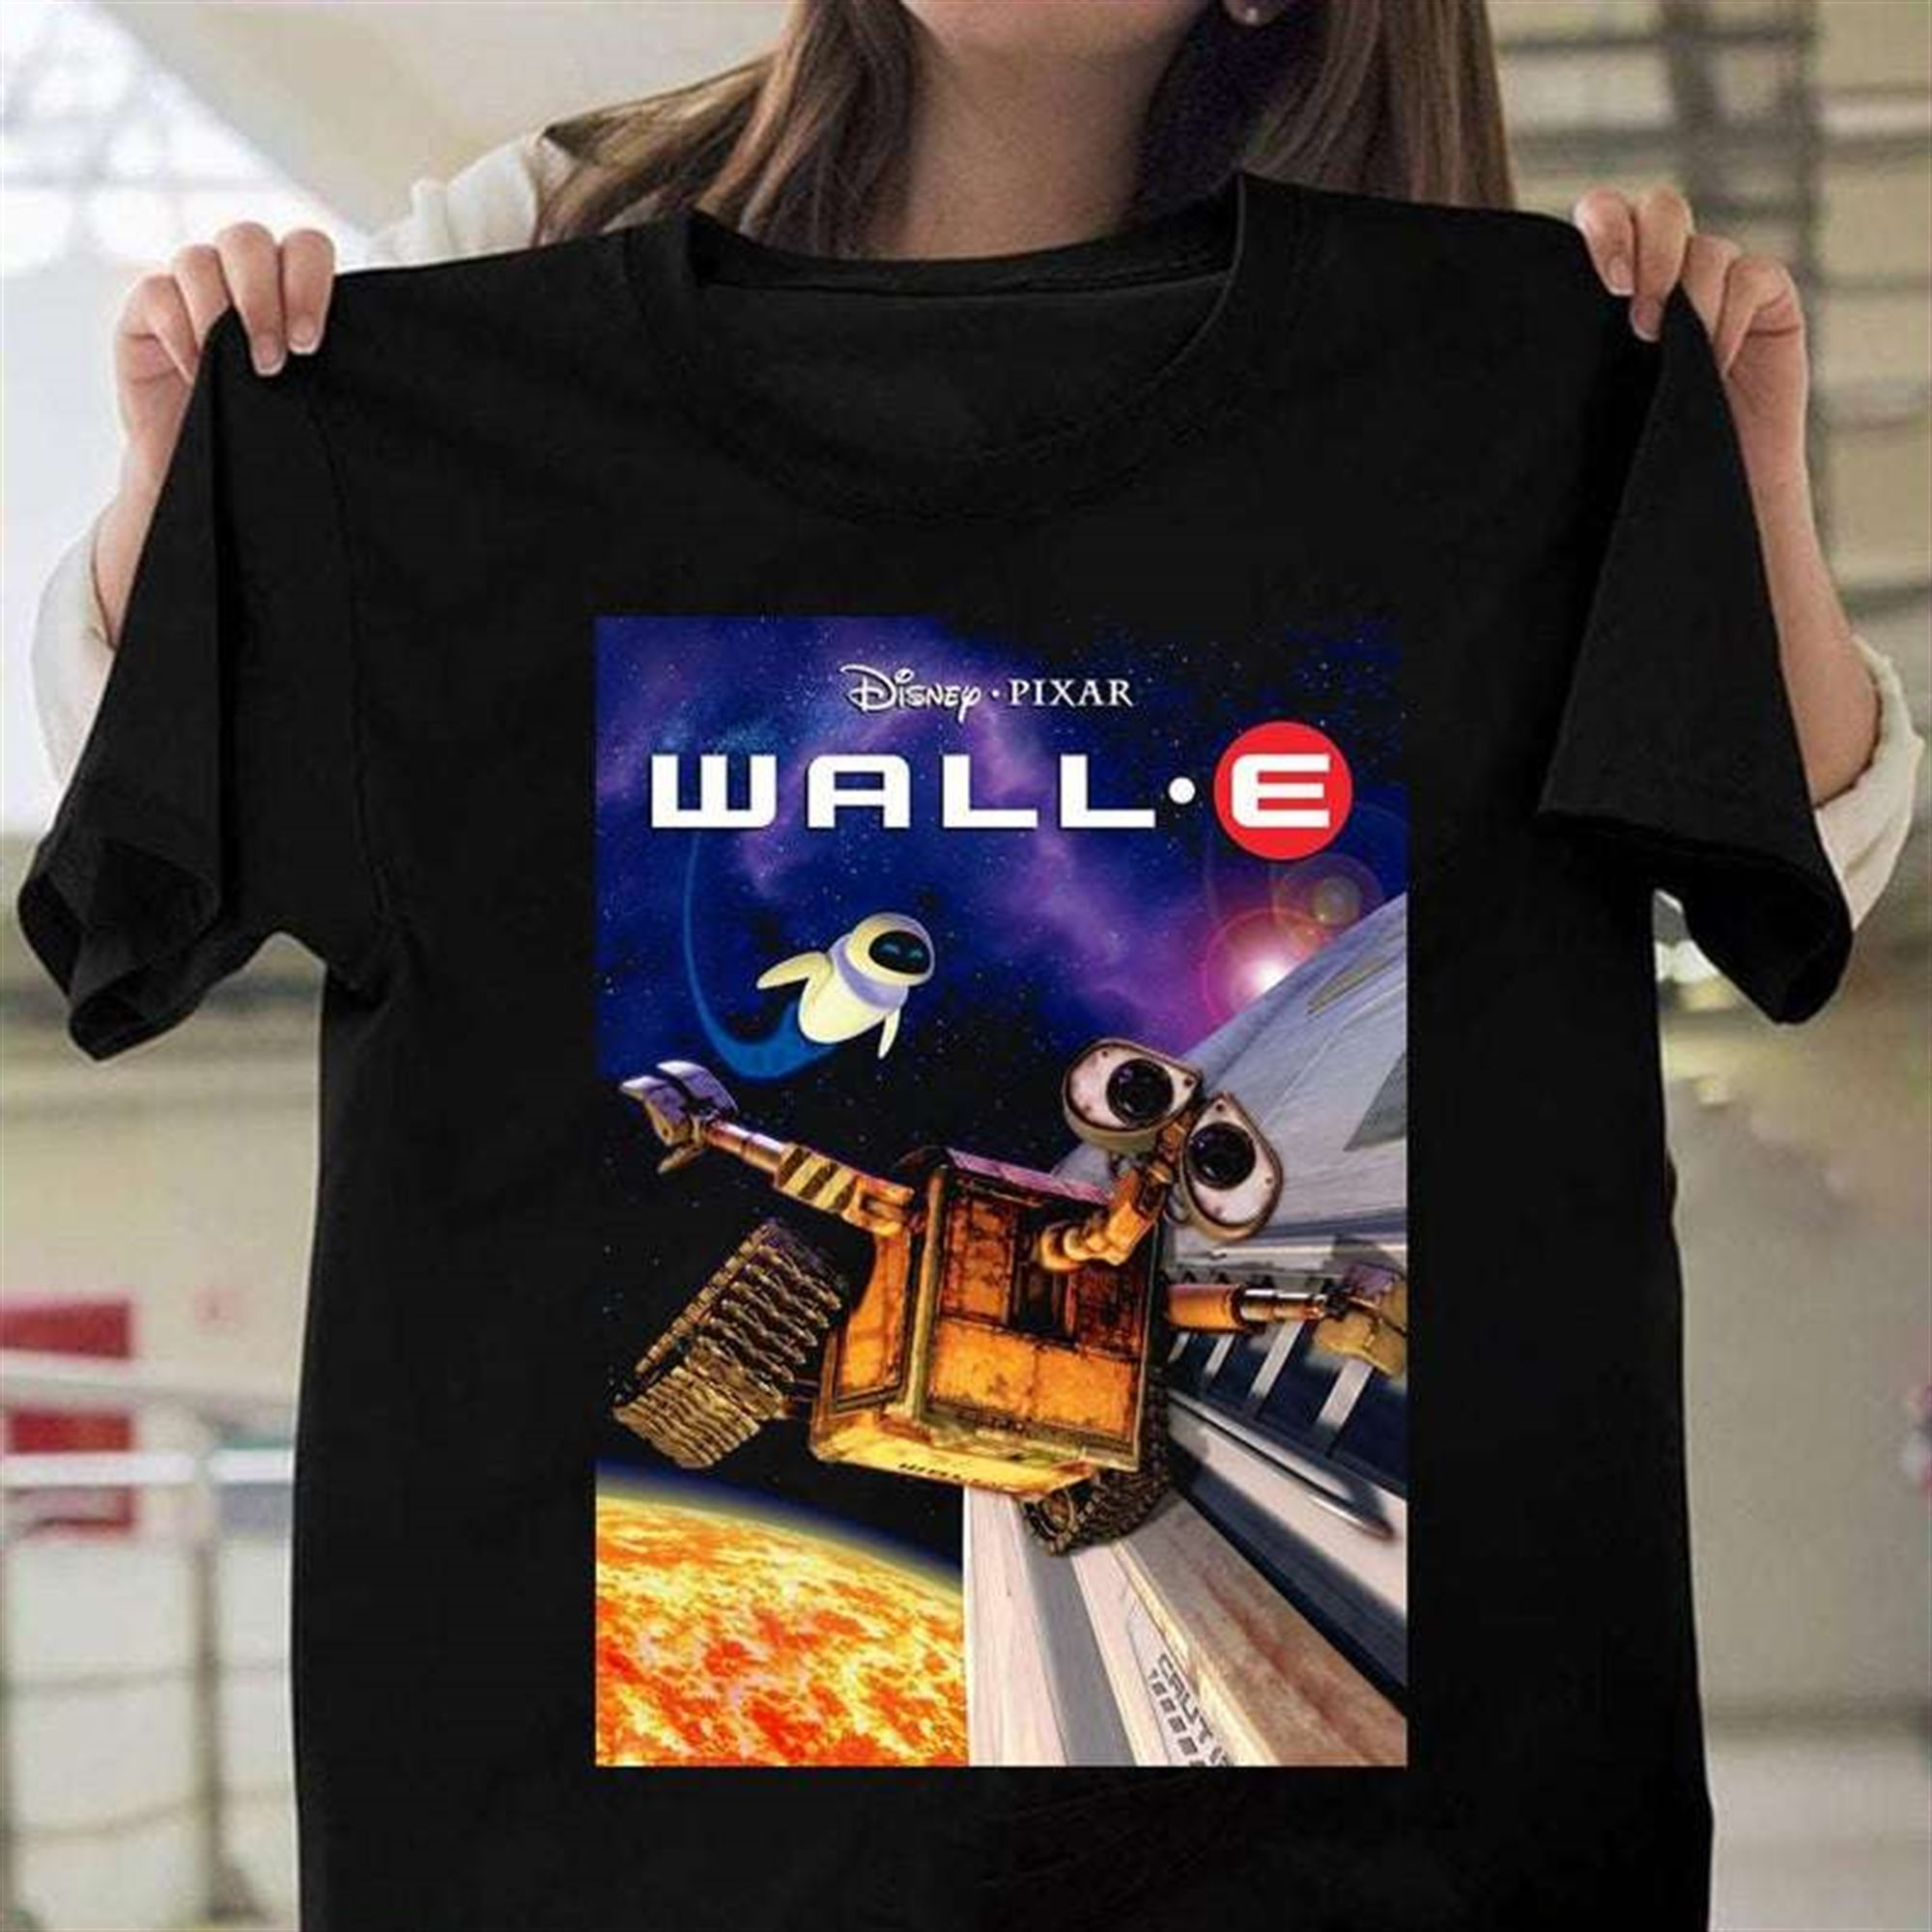 Wall E Disney Movie T Shirt Size Up To 5xl